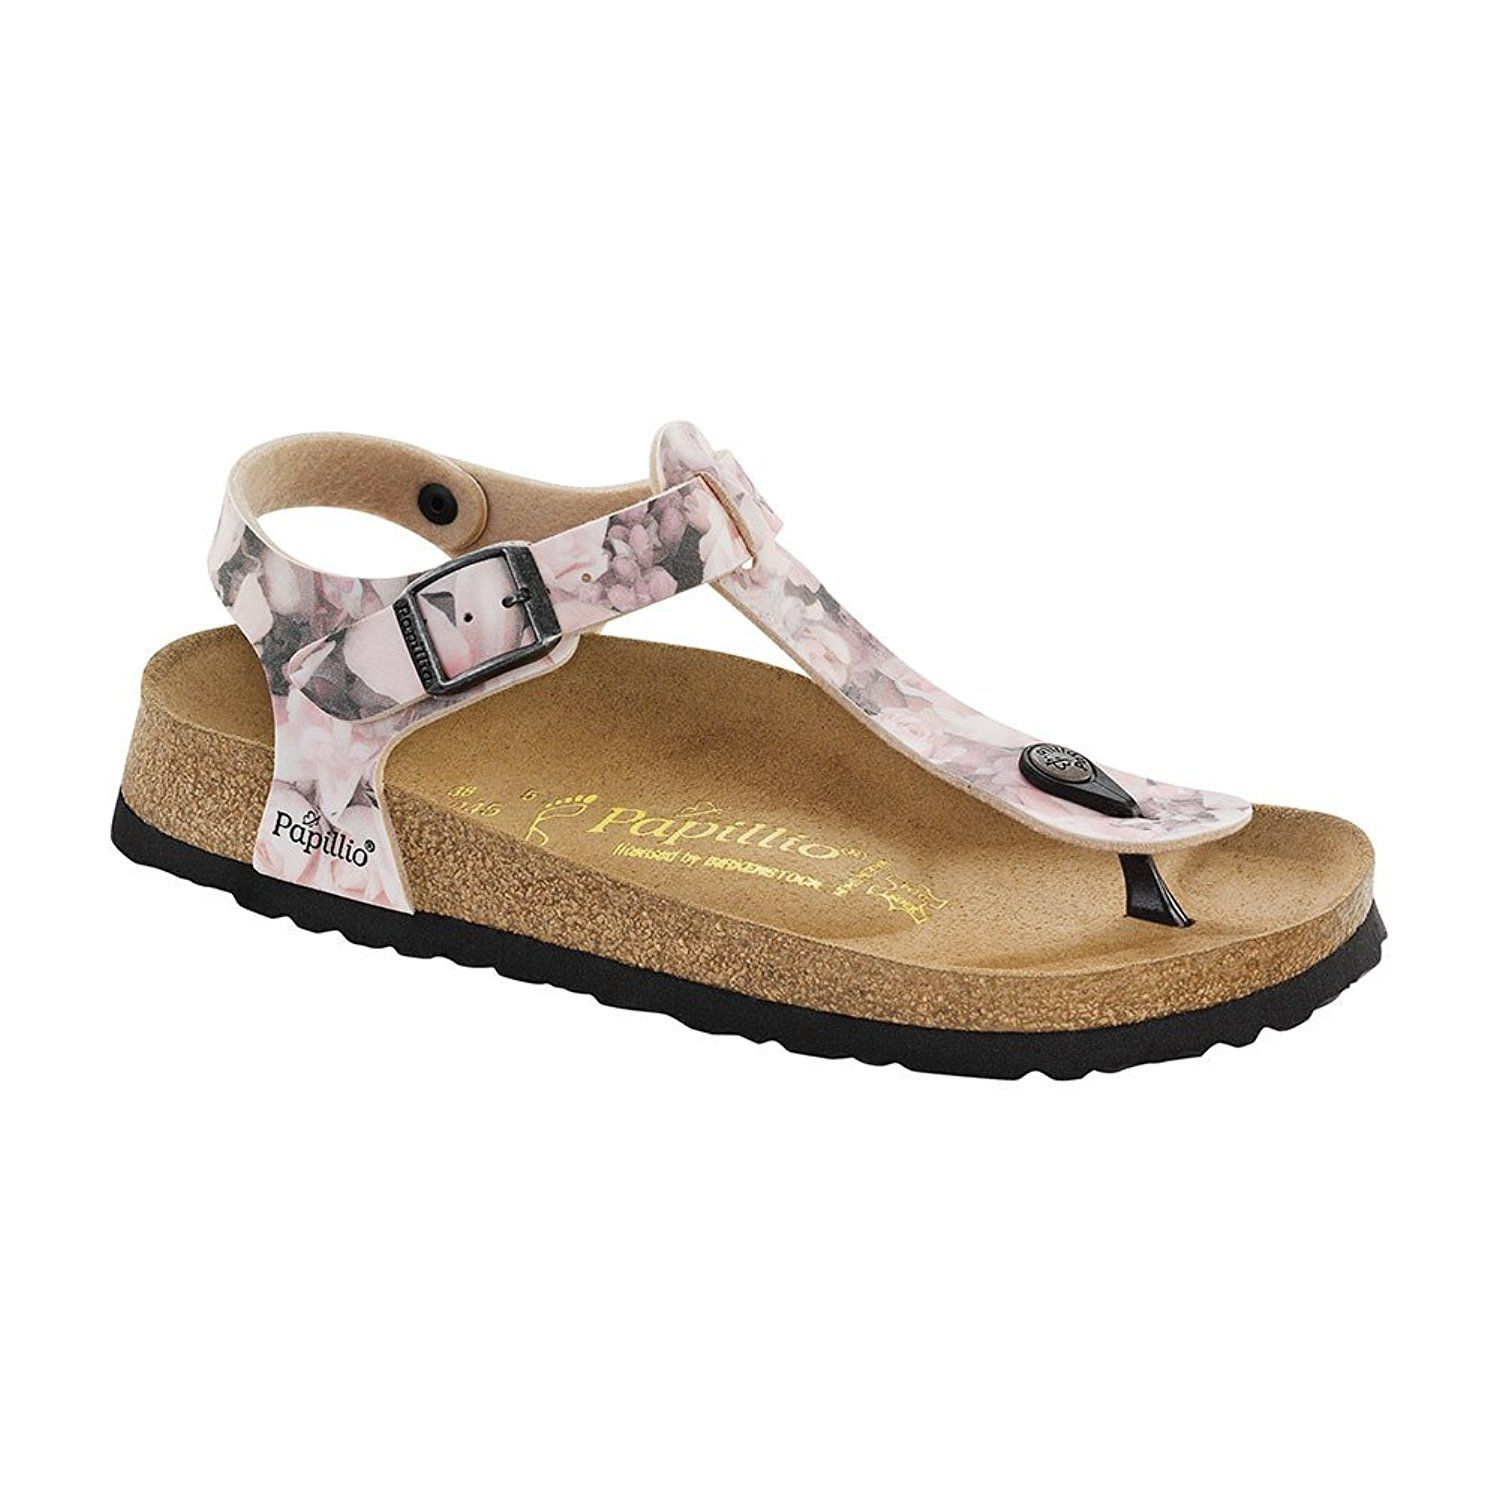 Khaki Birkenstock Kairo Amazon Ladies Mule Slippers | Bus